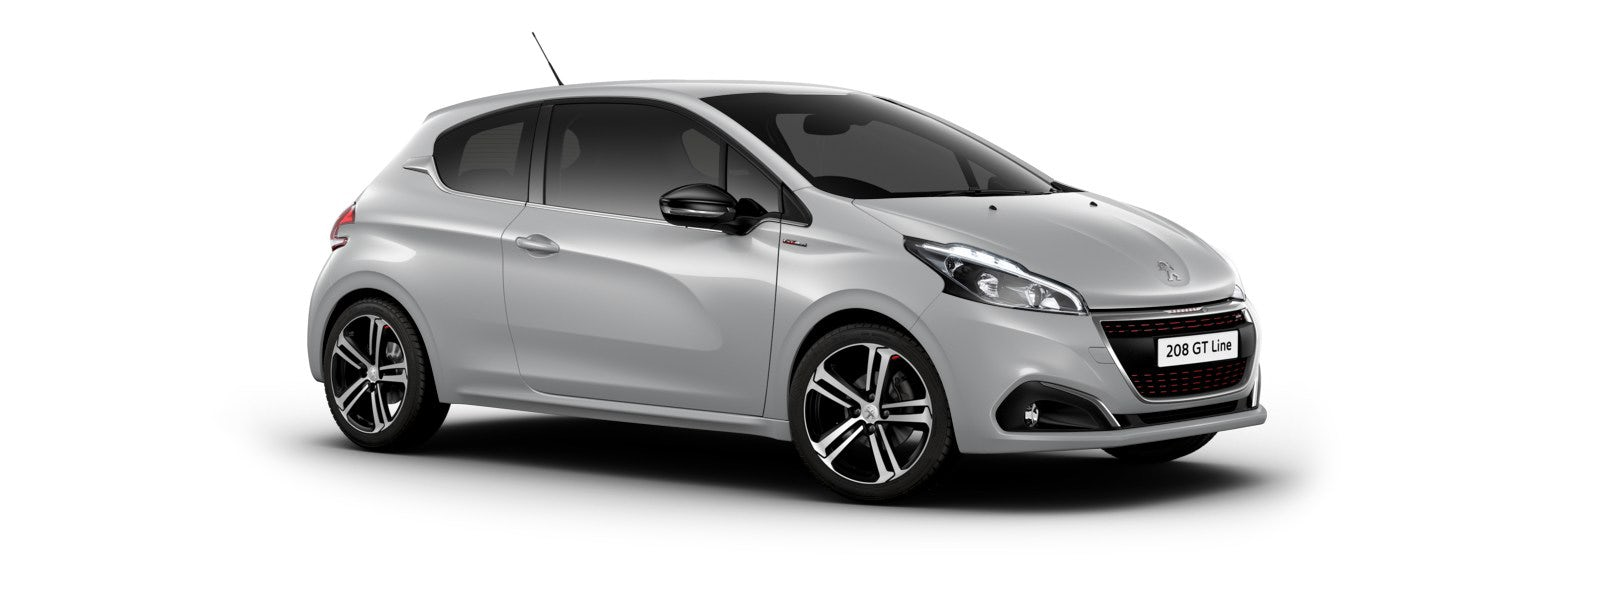 Peugeot 208 colours guide and prices | carwow